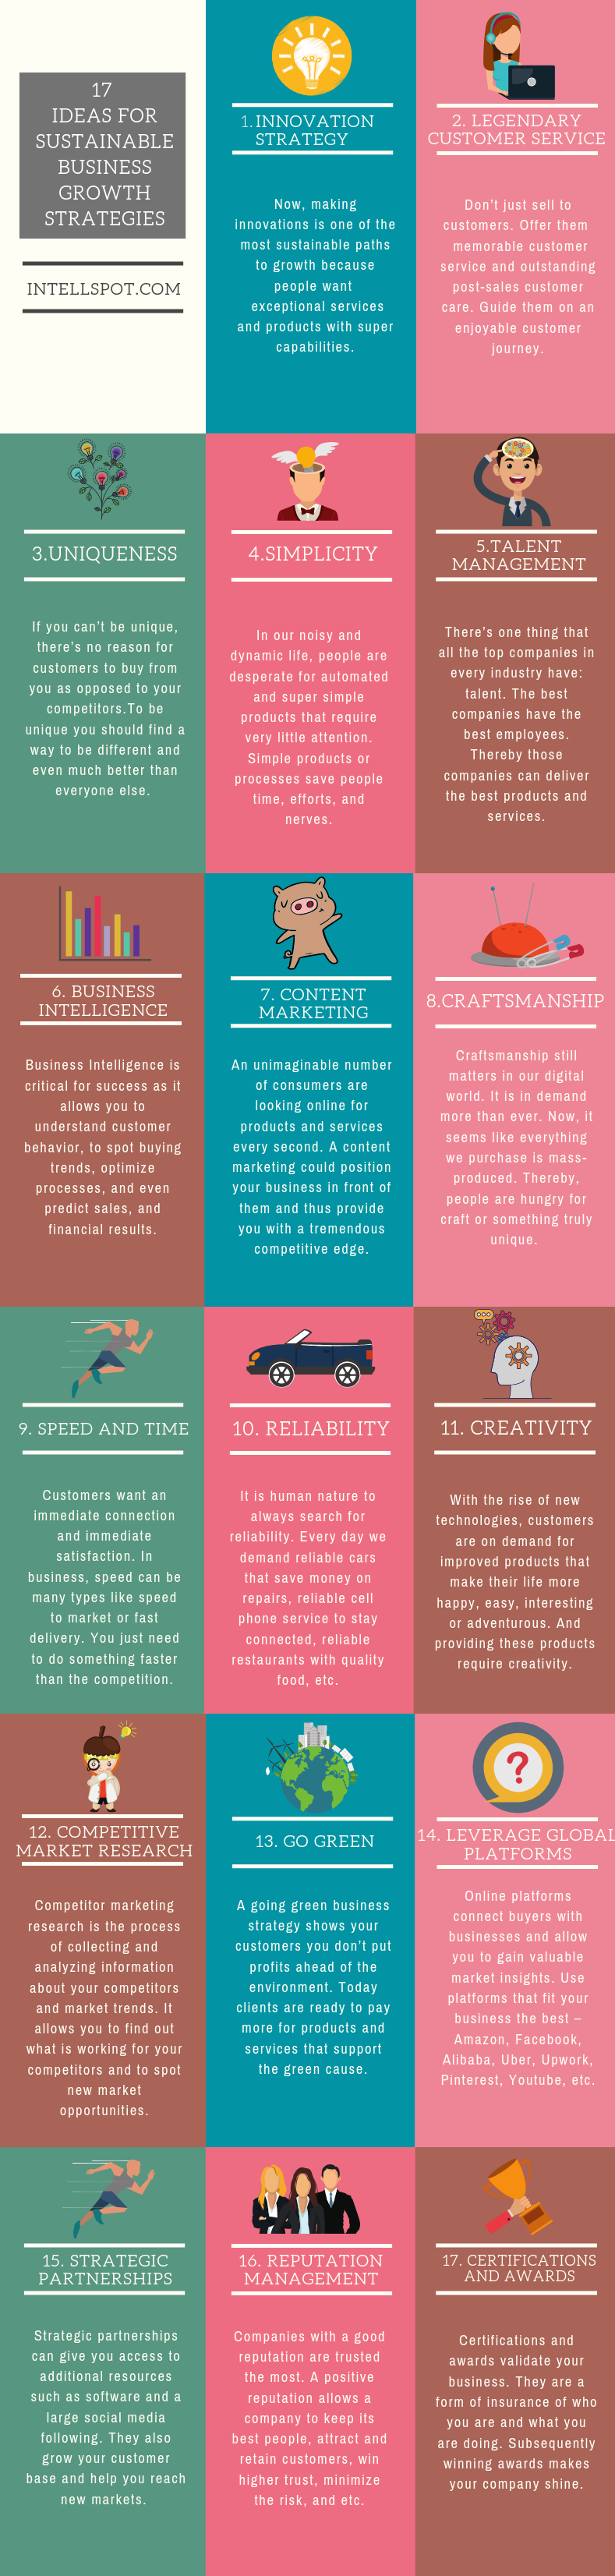 ideas for Sustainable Business Growth Strategies - an infographic